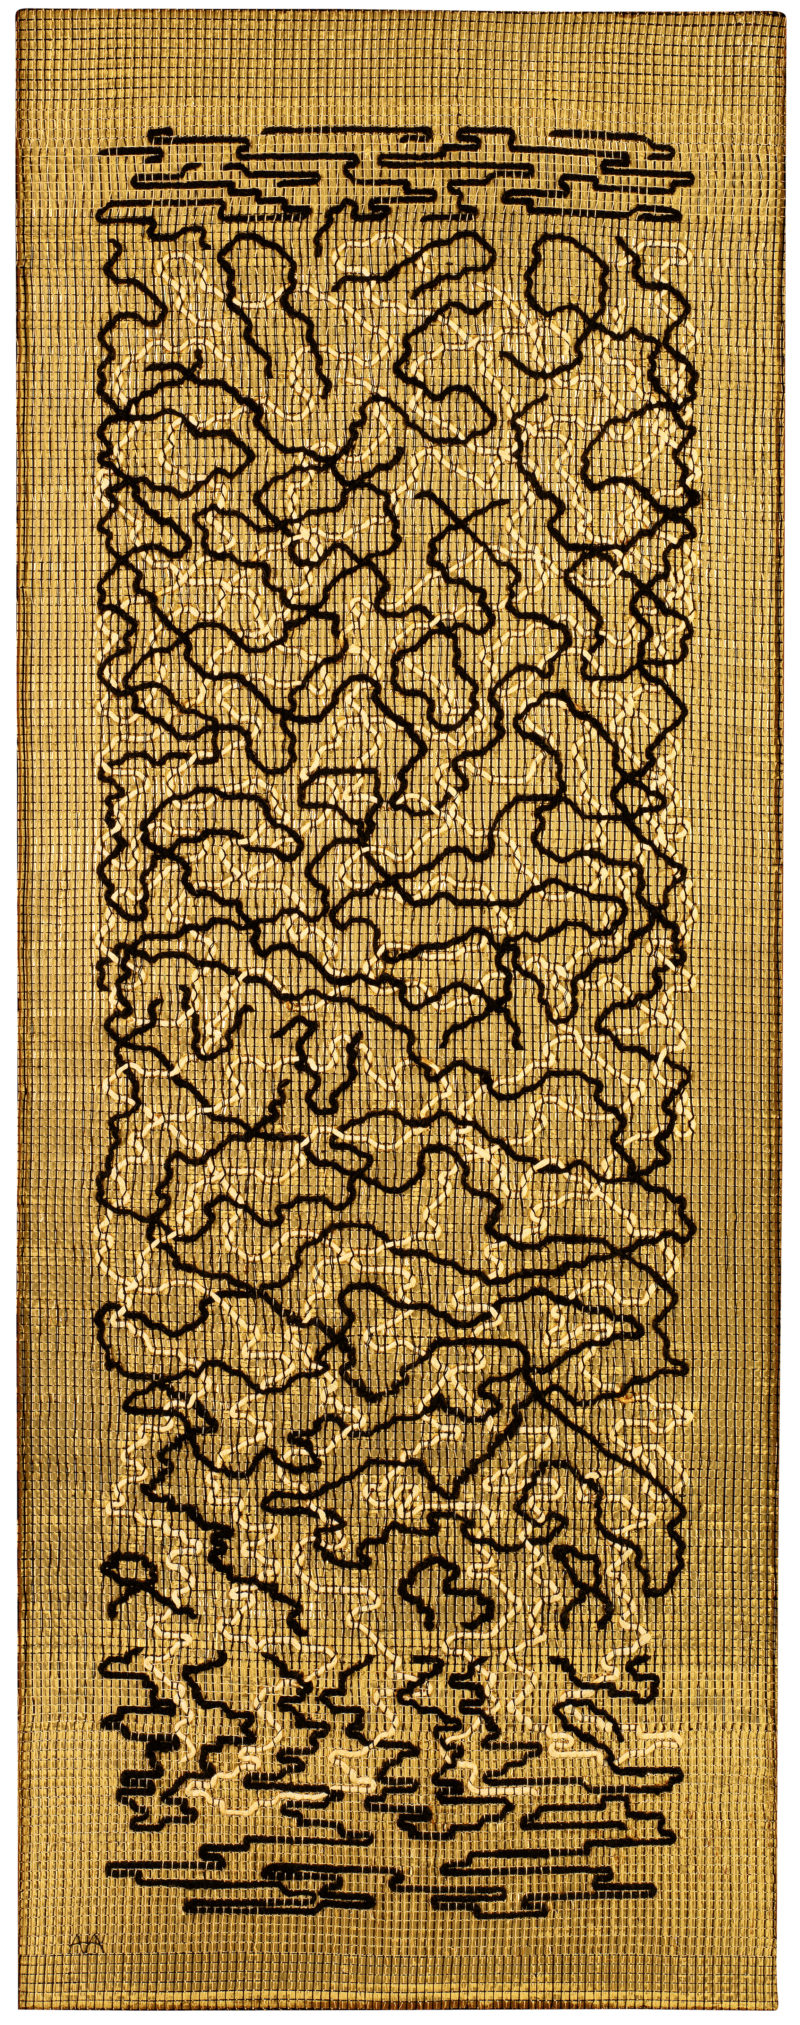 Anni Albers - Epitaph, 1968, pictorial weaving, 149,8 x 58,4 cm